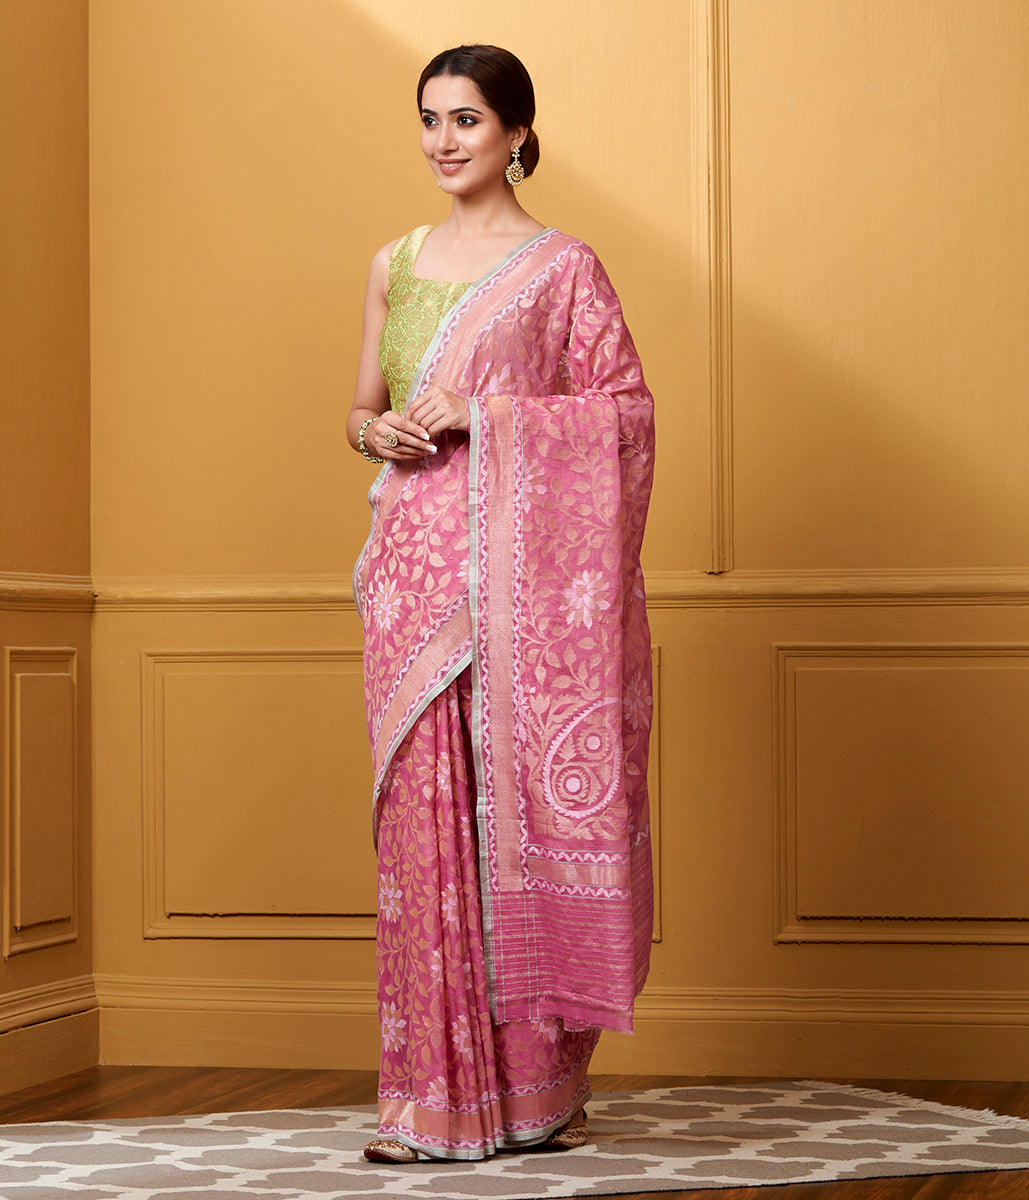 Handwoven pink cotton Jamdani saree